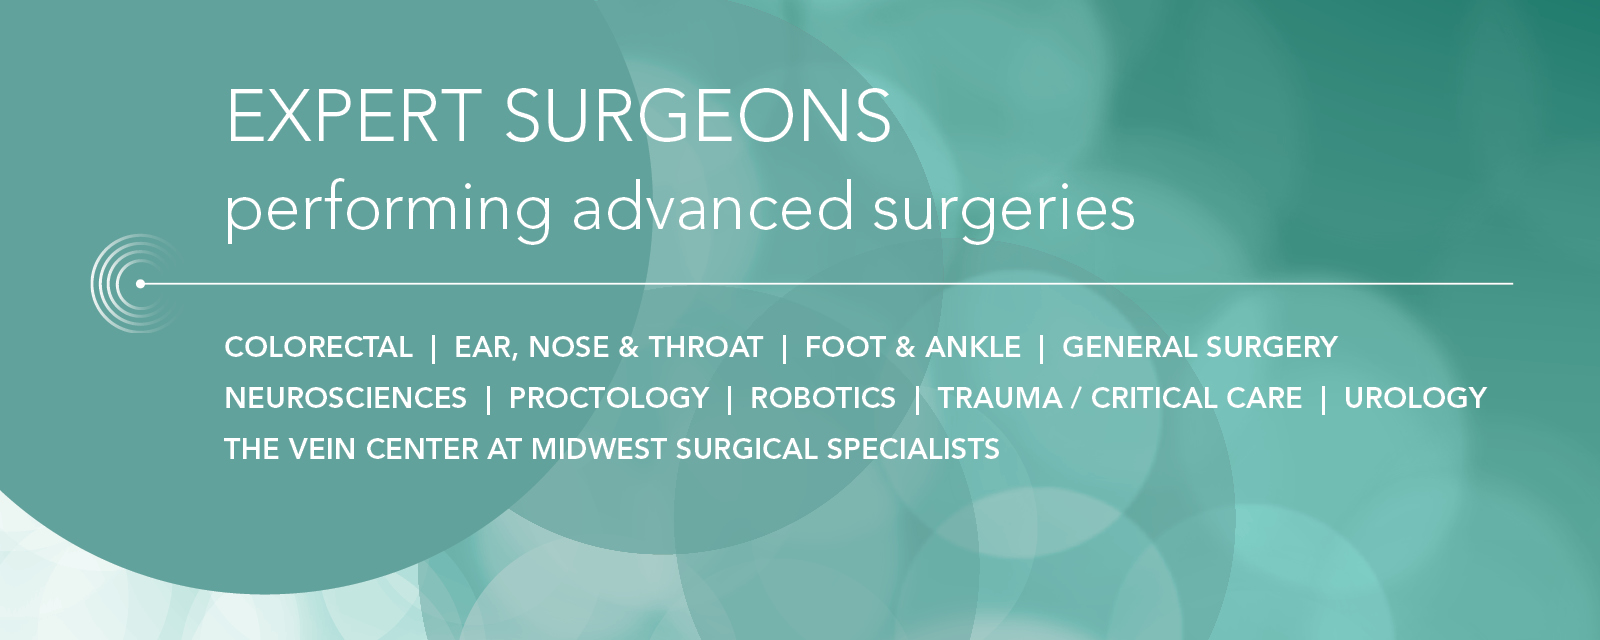 Expert surgeons performing advanced surgeries